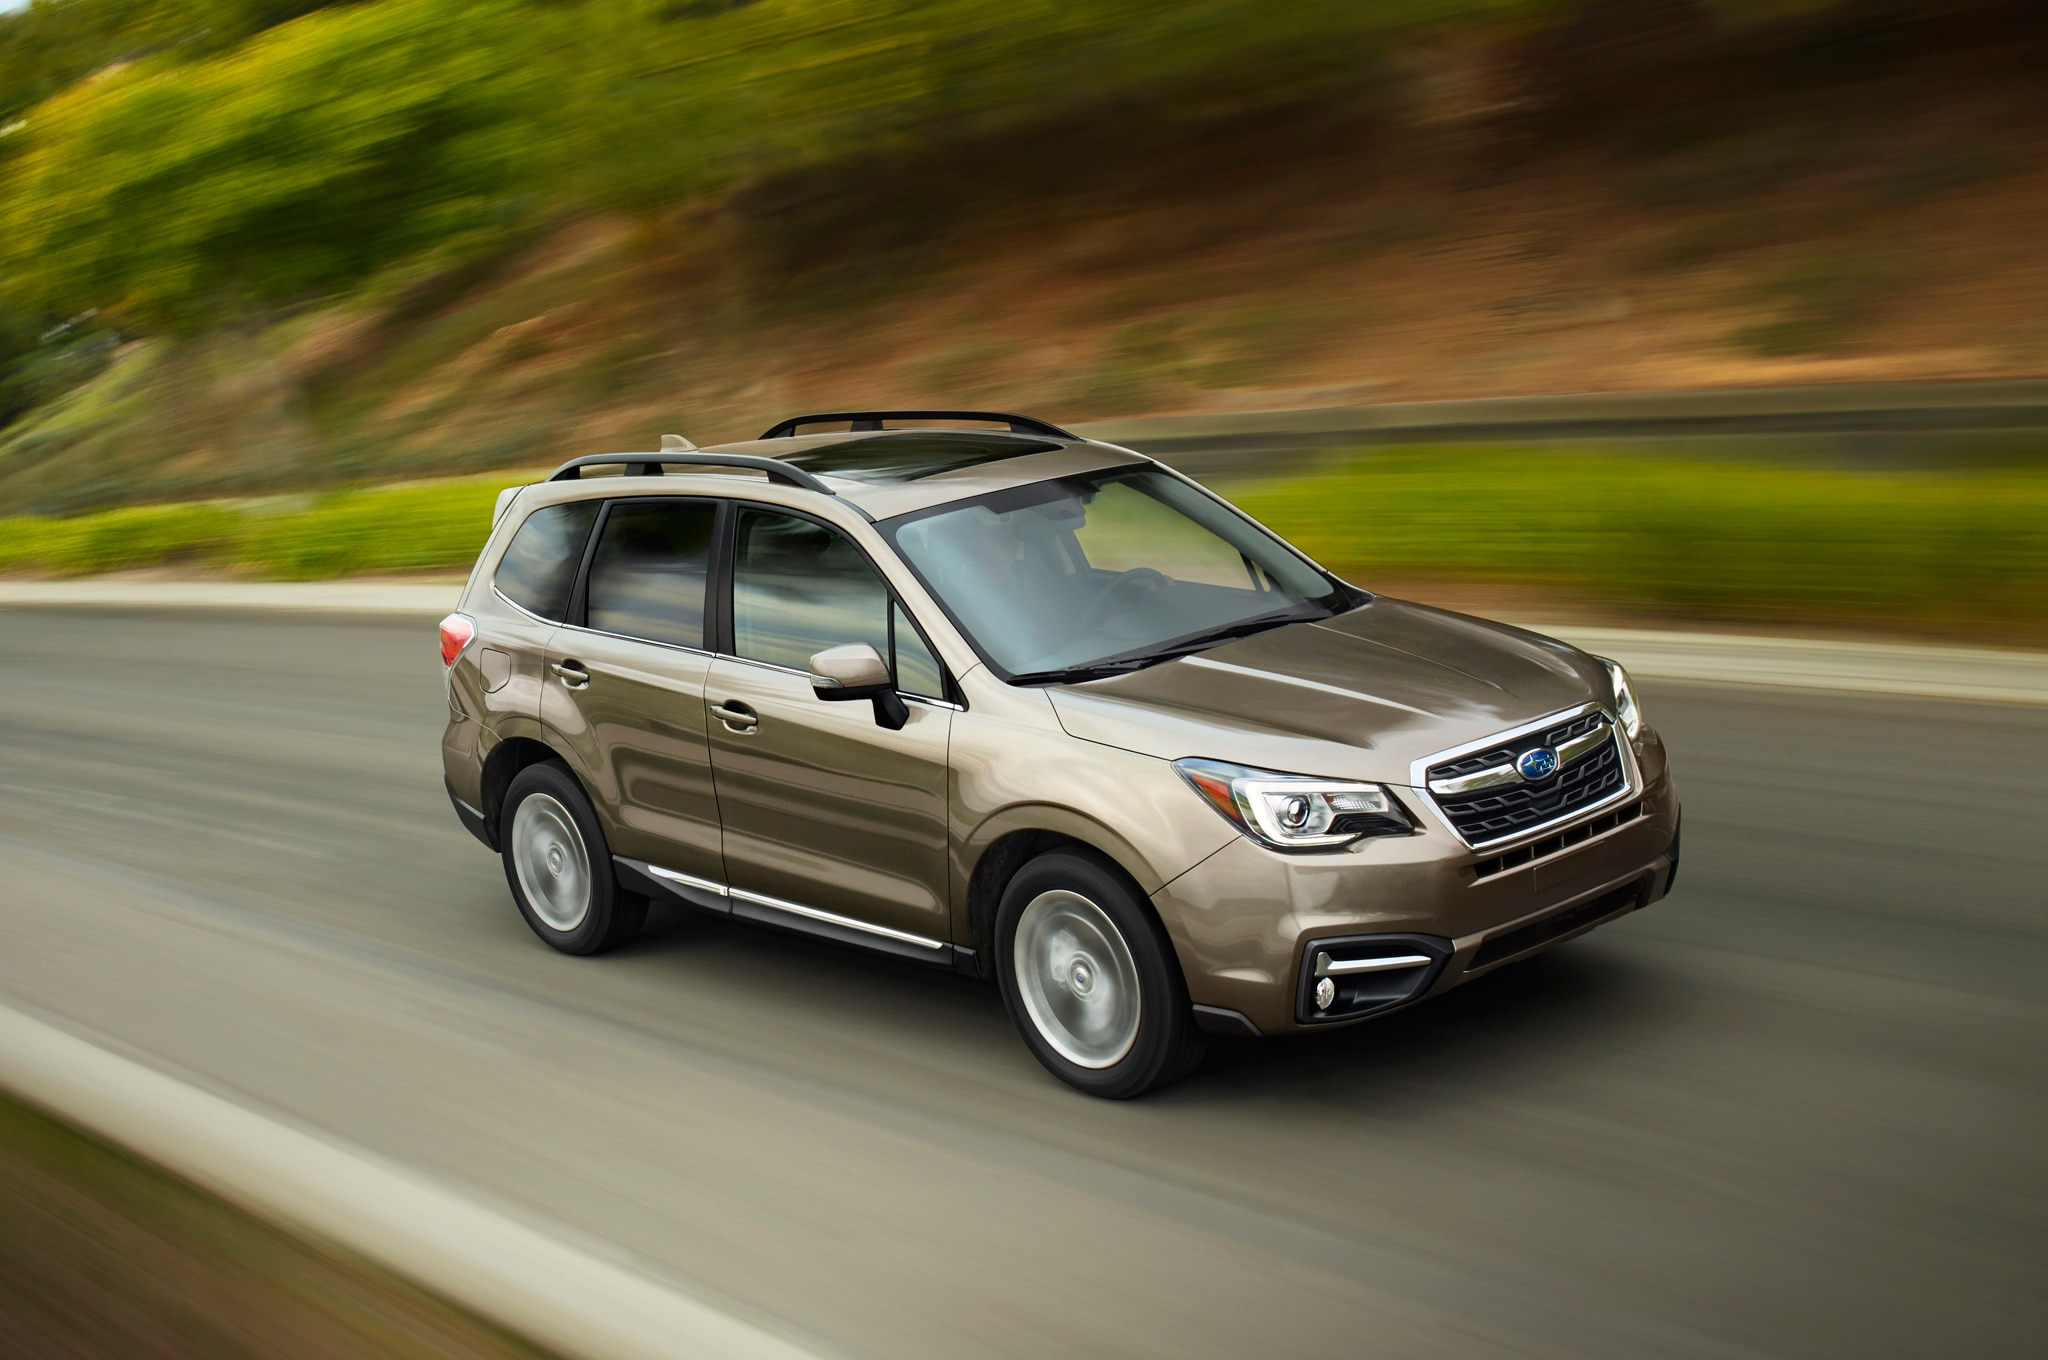 2017 subaru forester priced from 23 470 automobile magazine. Black Bedroom Furniture Sets. Home Design Ideas